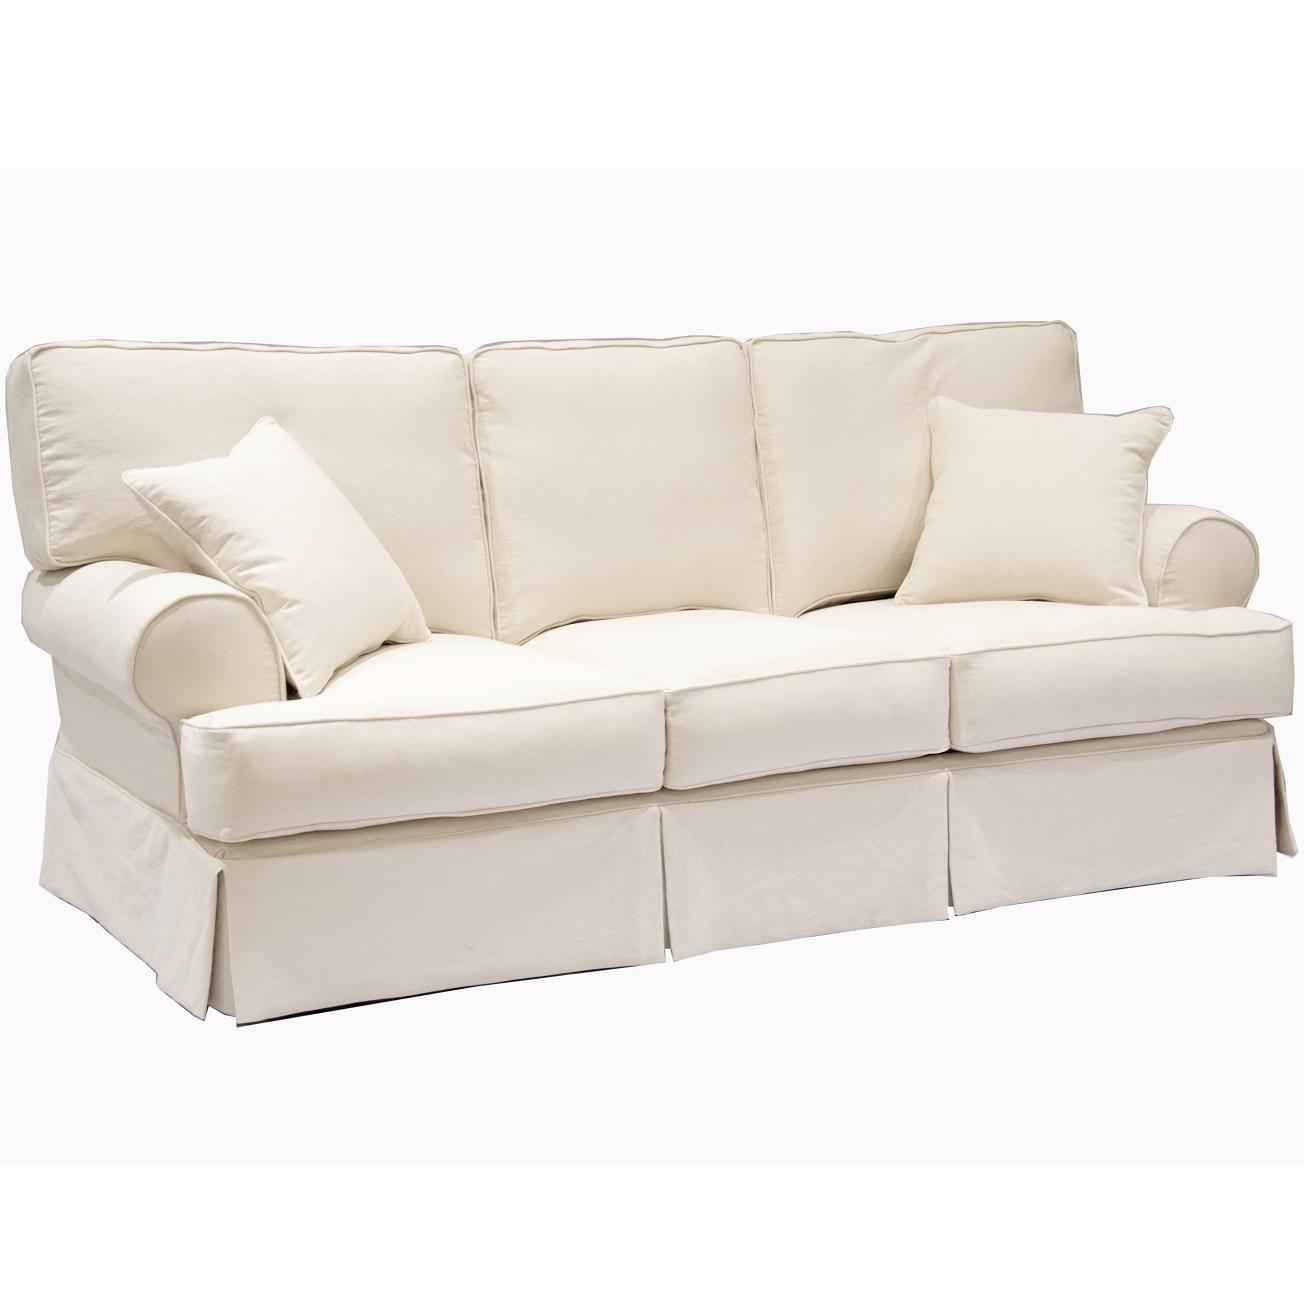 669 Casual Sofa by Synergy Home Furnishings at Johnny Janosik